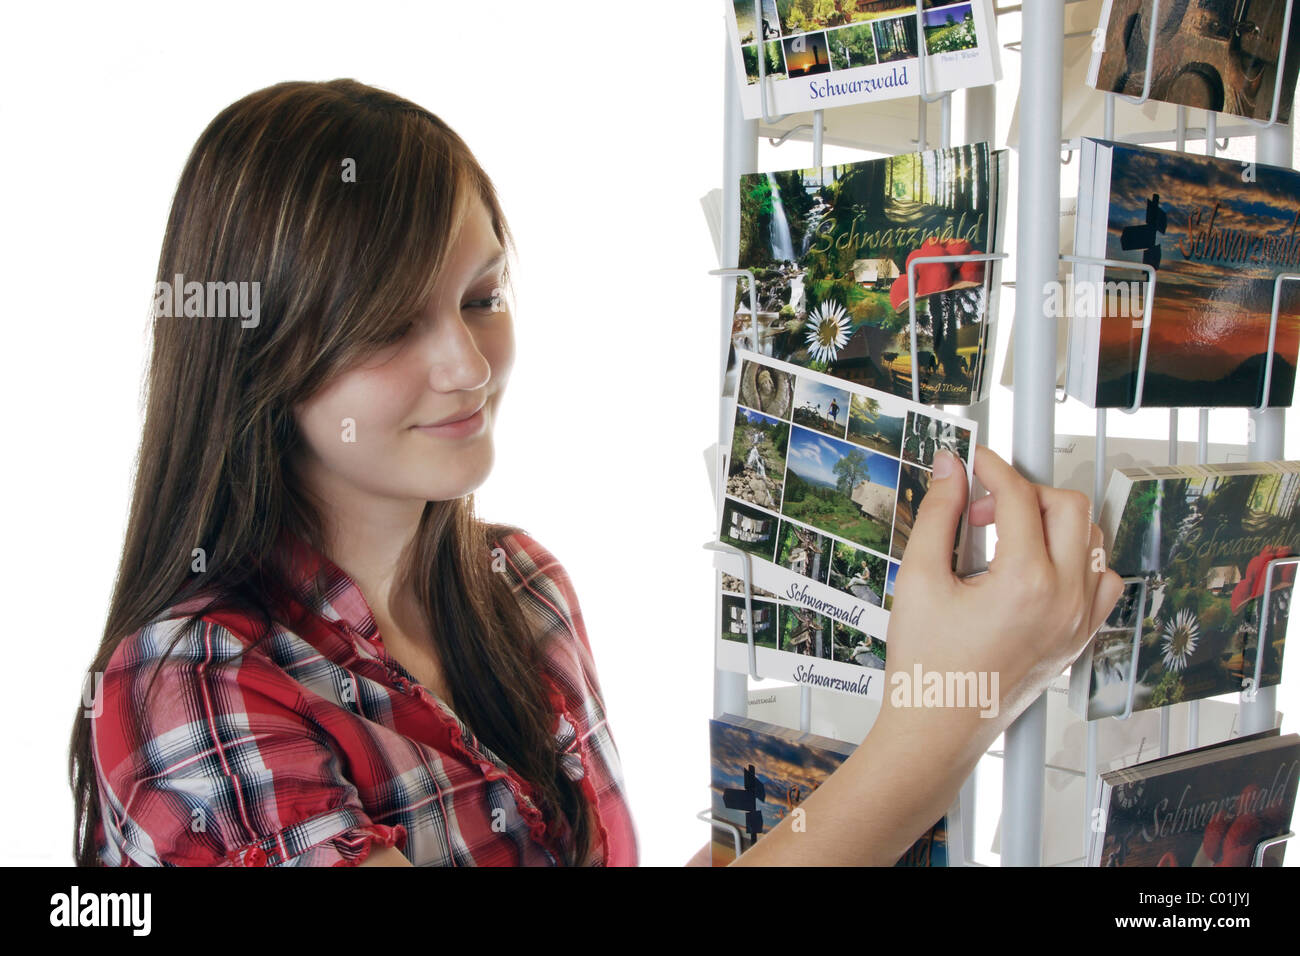 A young girl looking at postcards - Stock Image